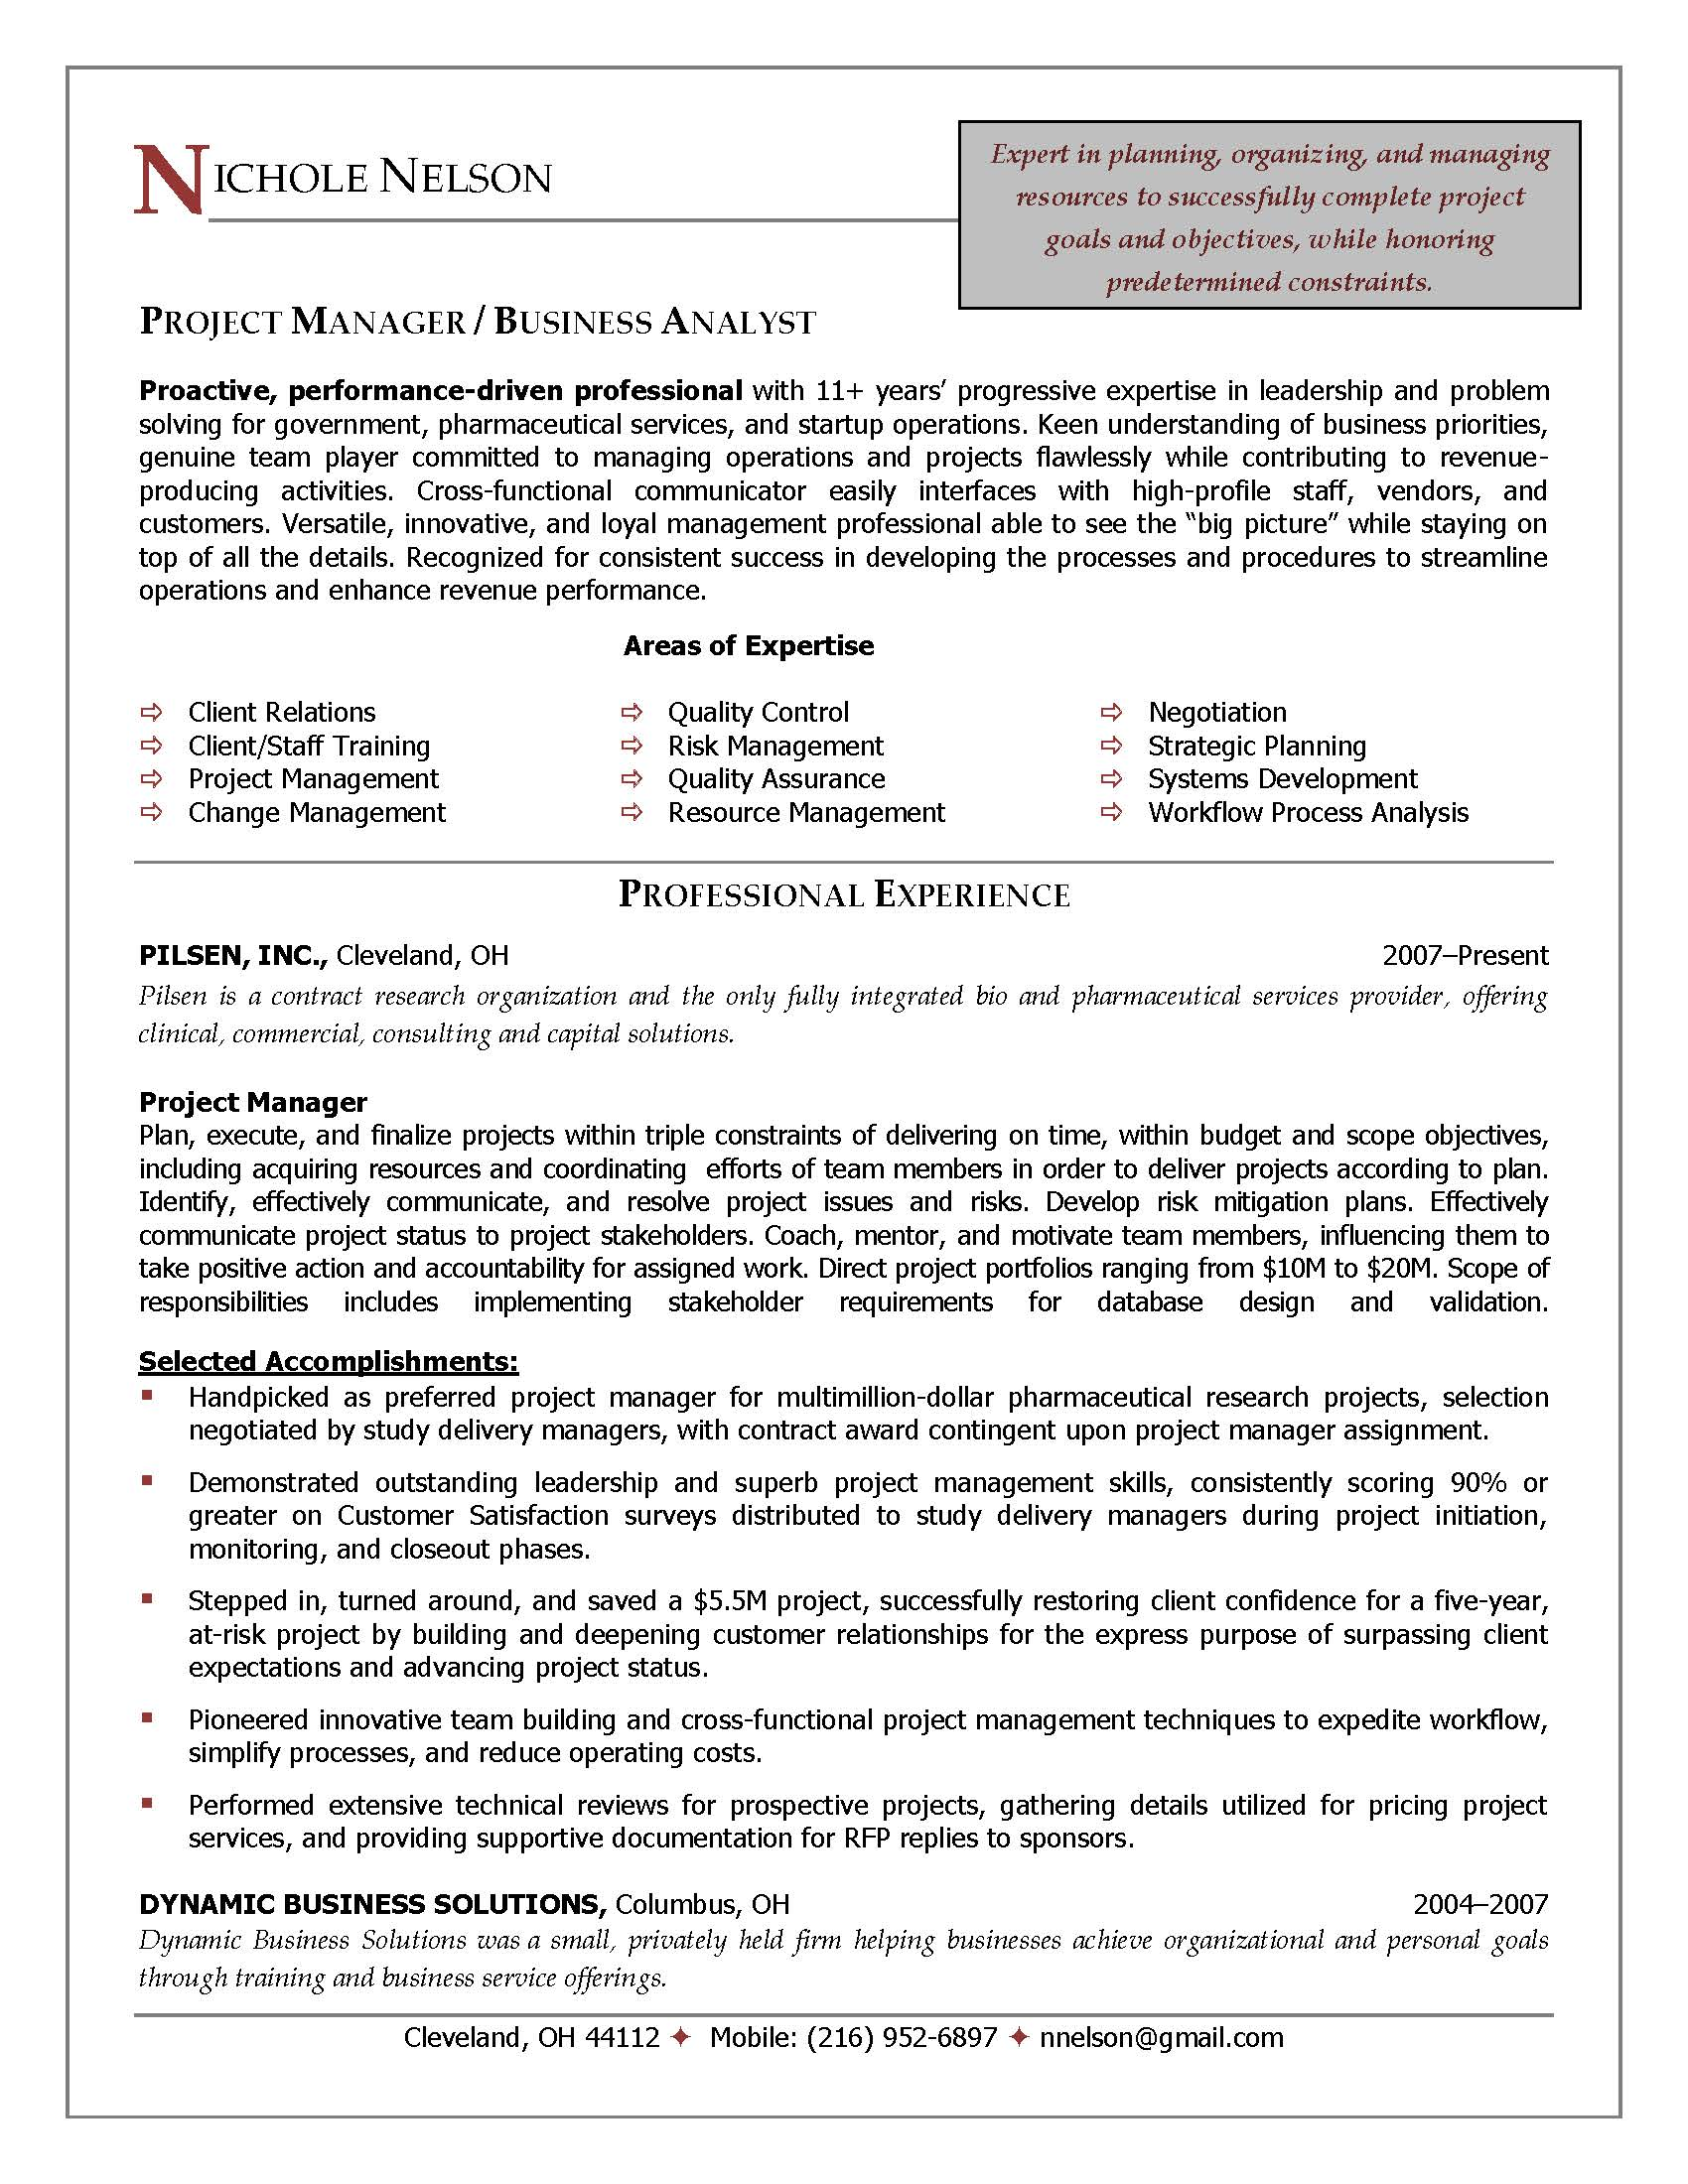 project manager resume sample provided by elite resume writing services - Business Operation Manager Resume